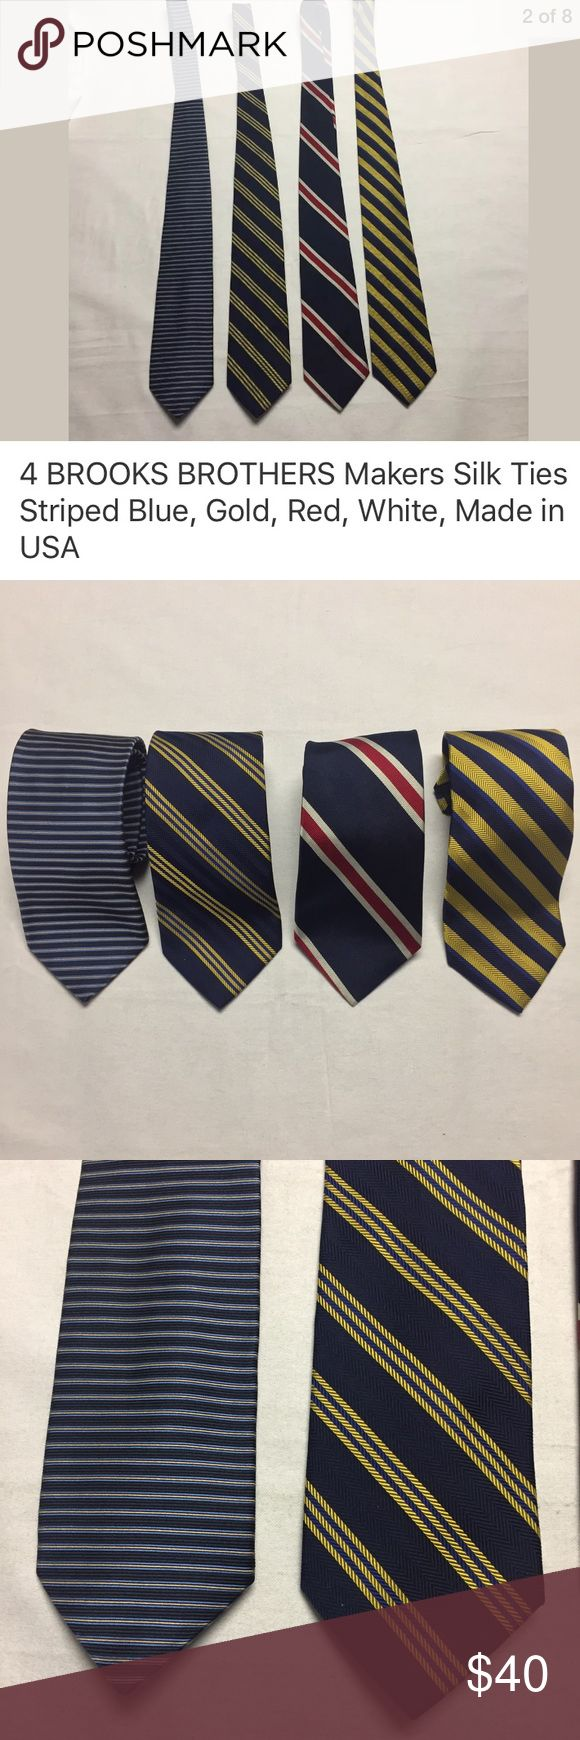 "4- BROOKS BROTHERS Makers Silk Ties Made in USA. Lot of 4- BROOKS BROTHERS Makers Silk Ties in Stripe as pictured. 3.75"" at the widest. 100% Silk. Made in the USA. Excellent preowned condition- no rips, holes, snags or stains. Brooks Brothers Accessories Ties"